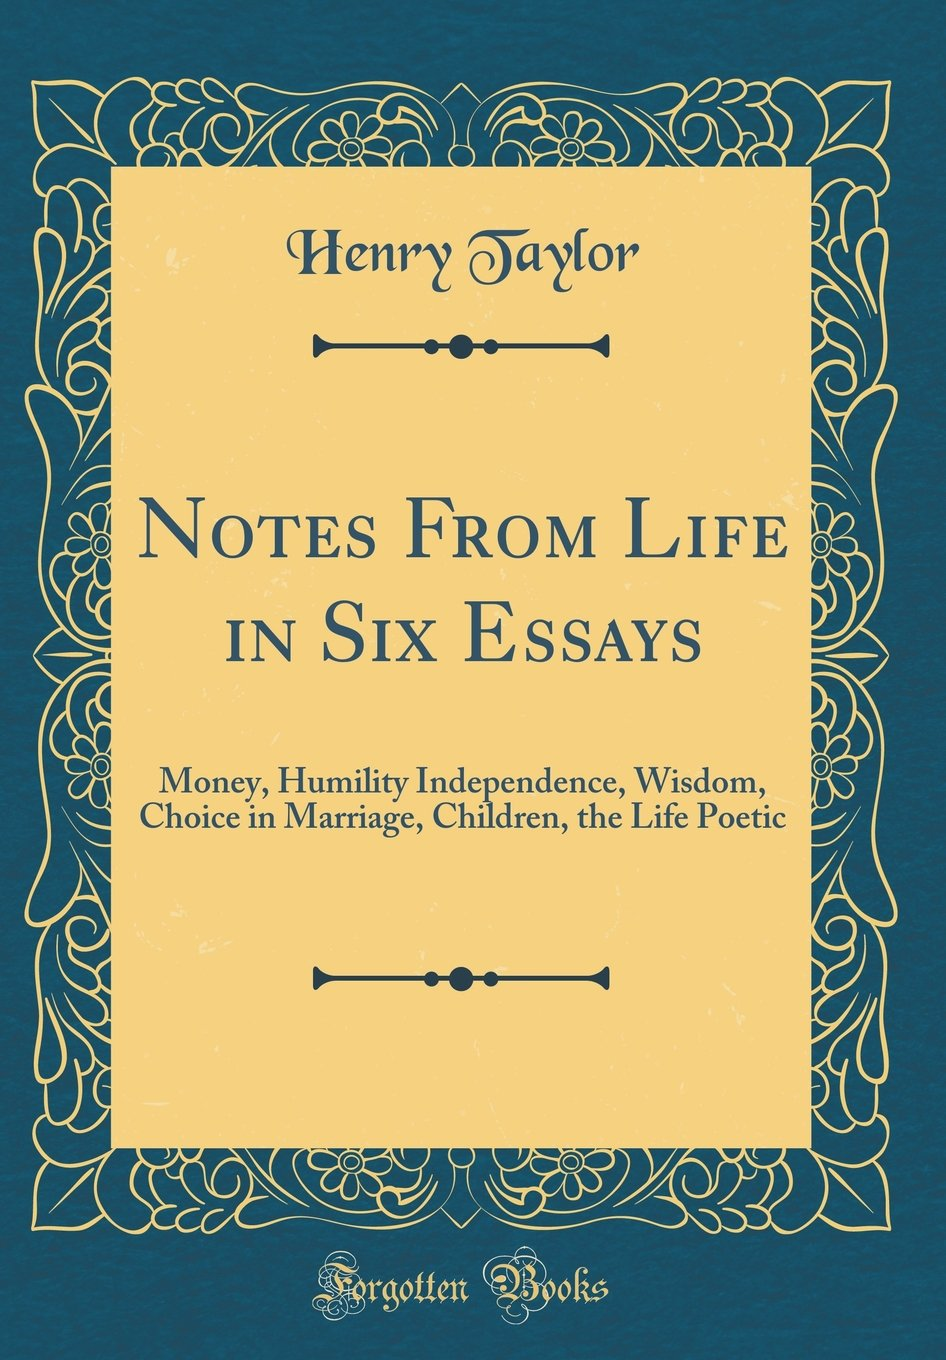 Download Notes From Life in Six Essays: Money, Humility Independence, Wisdom, Choice in Marriage, Children, the Life Poetic (Classic Reprint) PDF